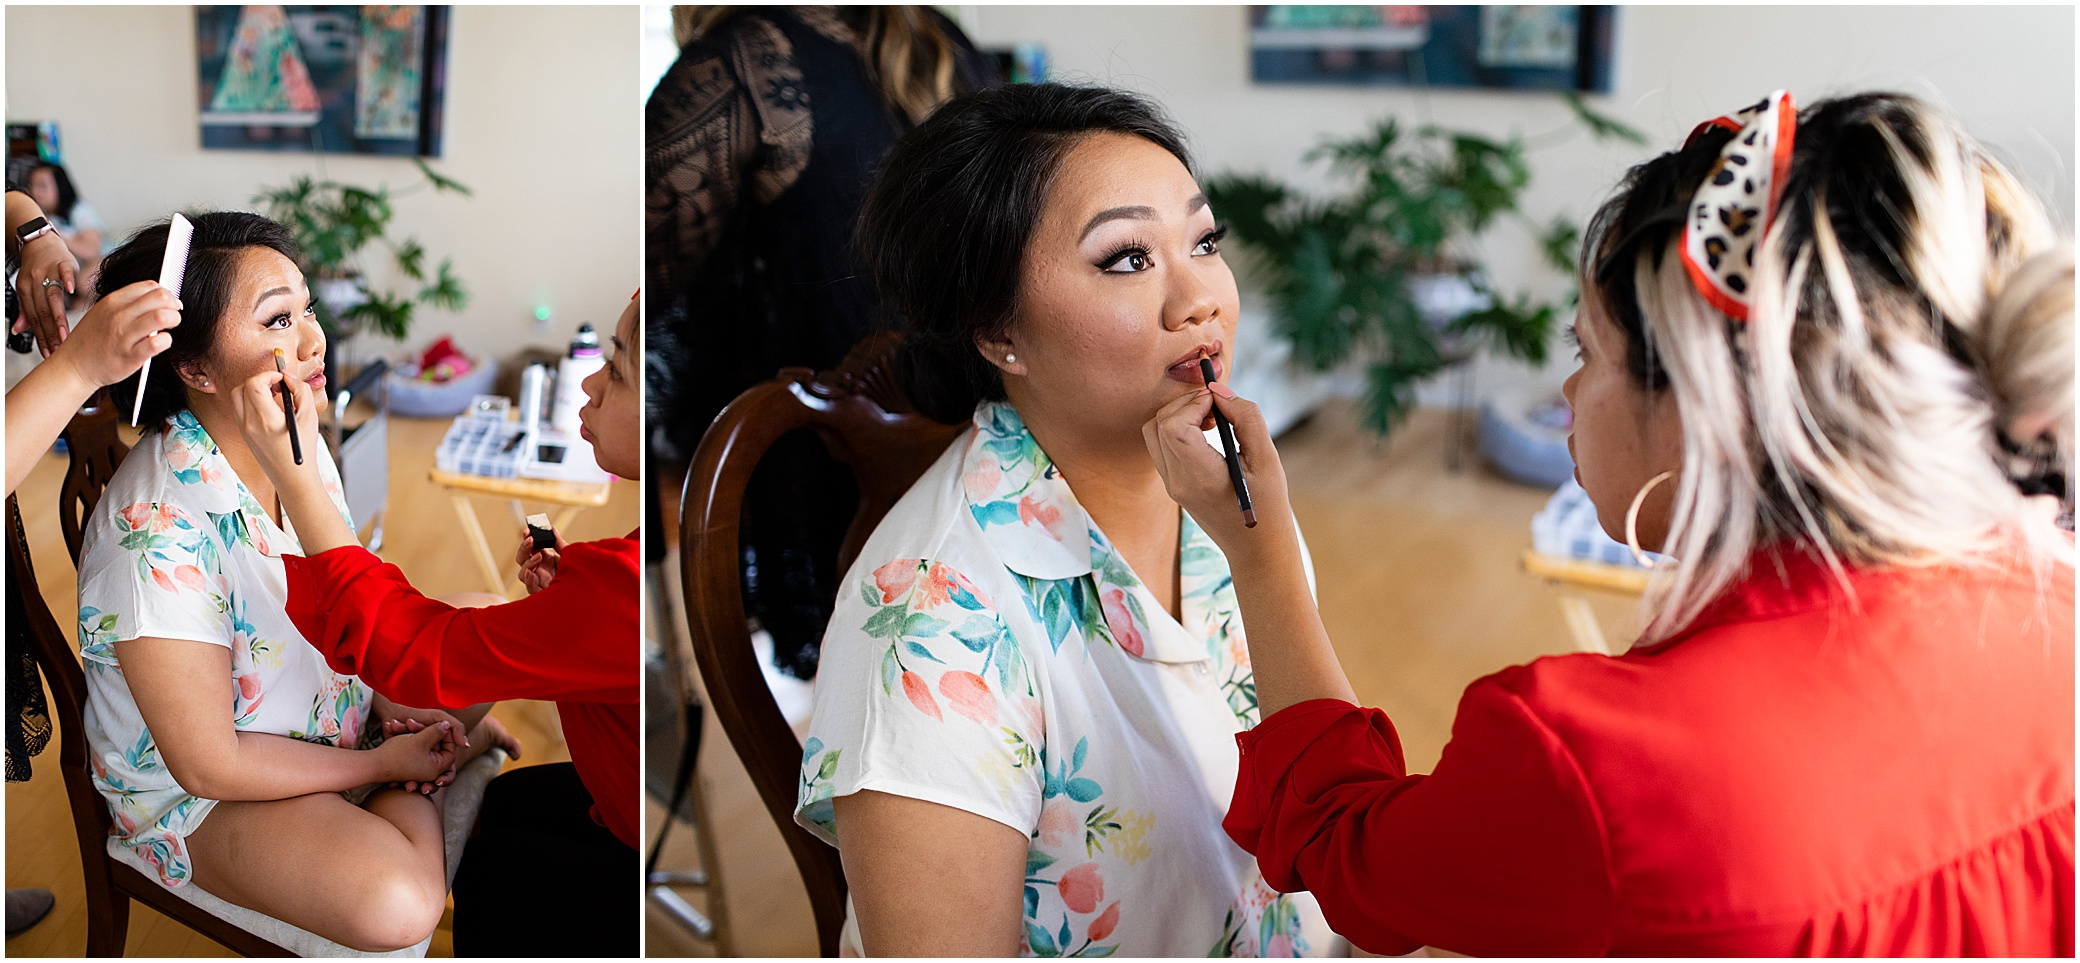 spring wedding at the hermitage museum and gardens, Jessica Ryan photography, the makeup school